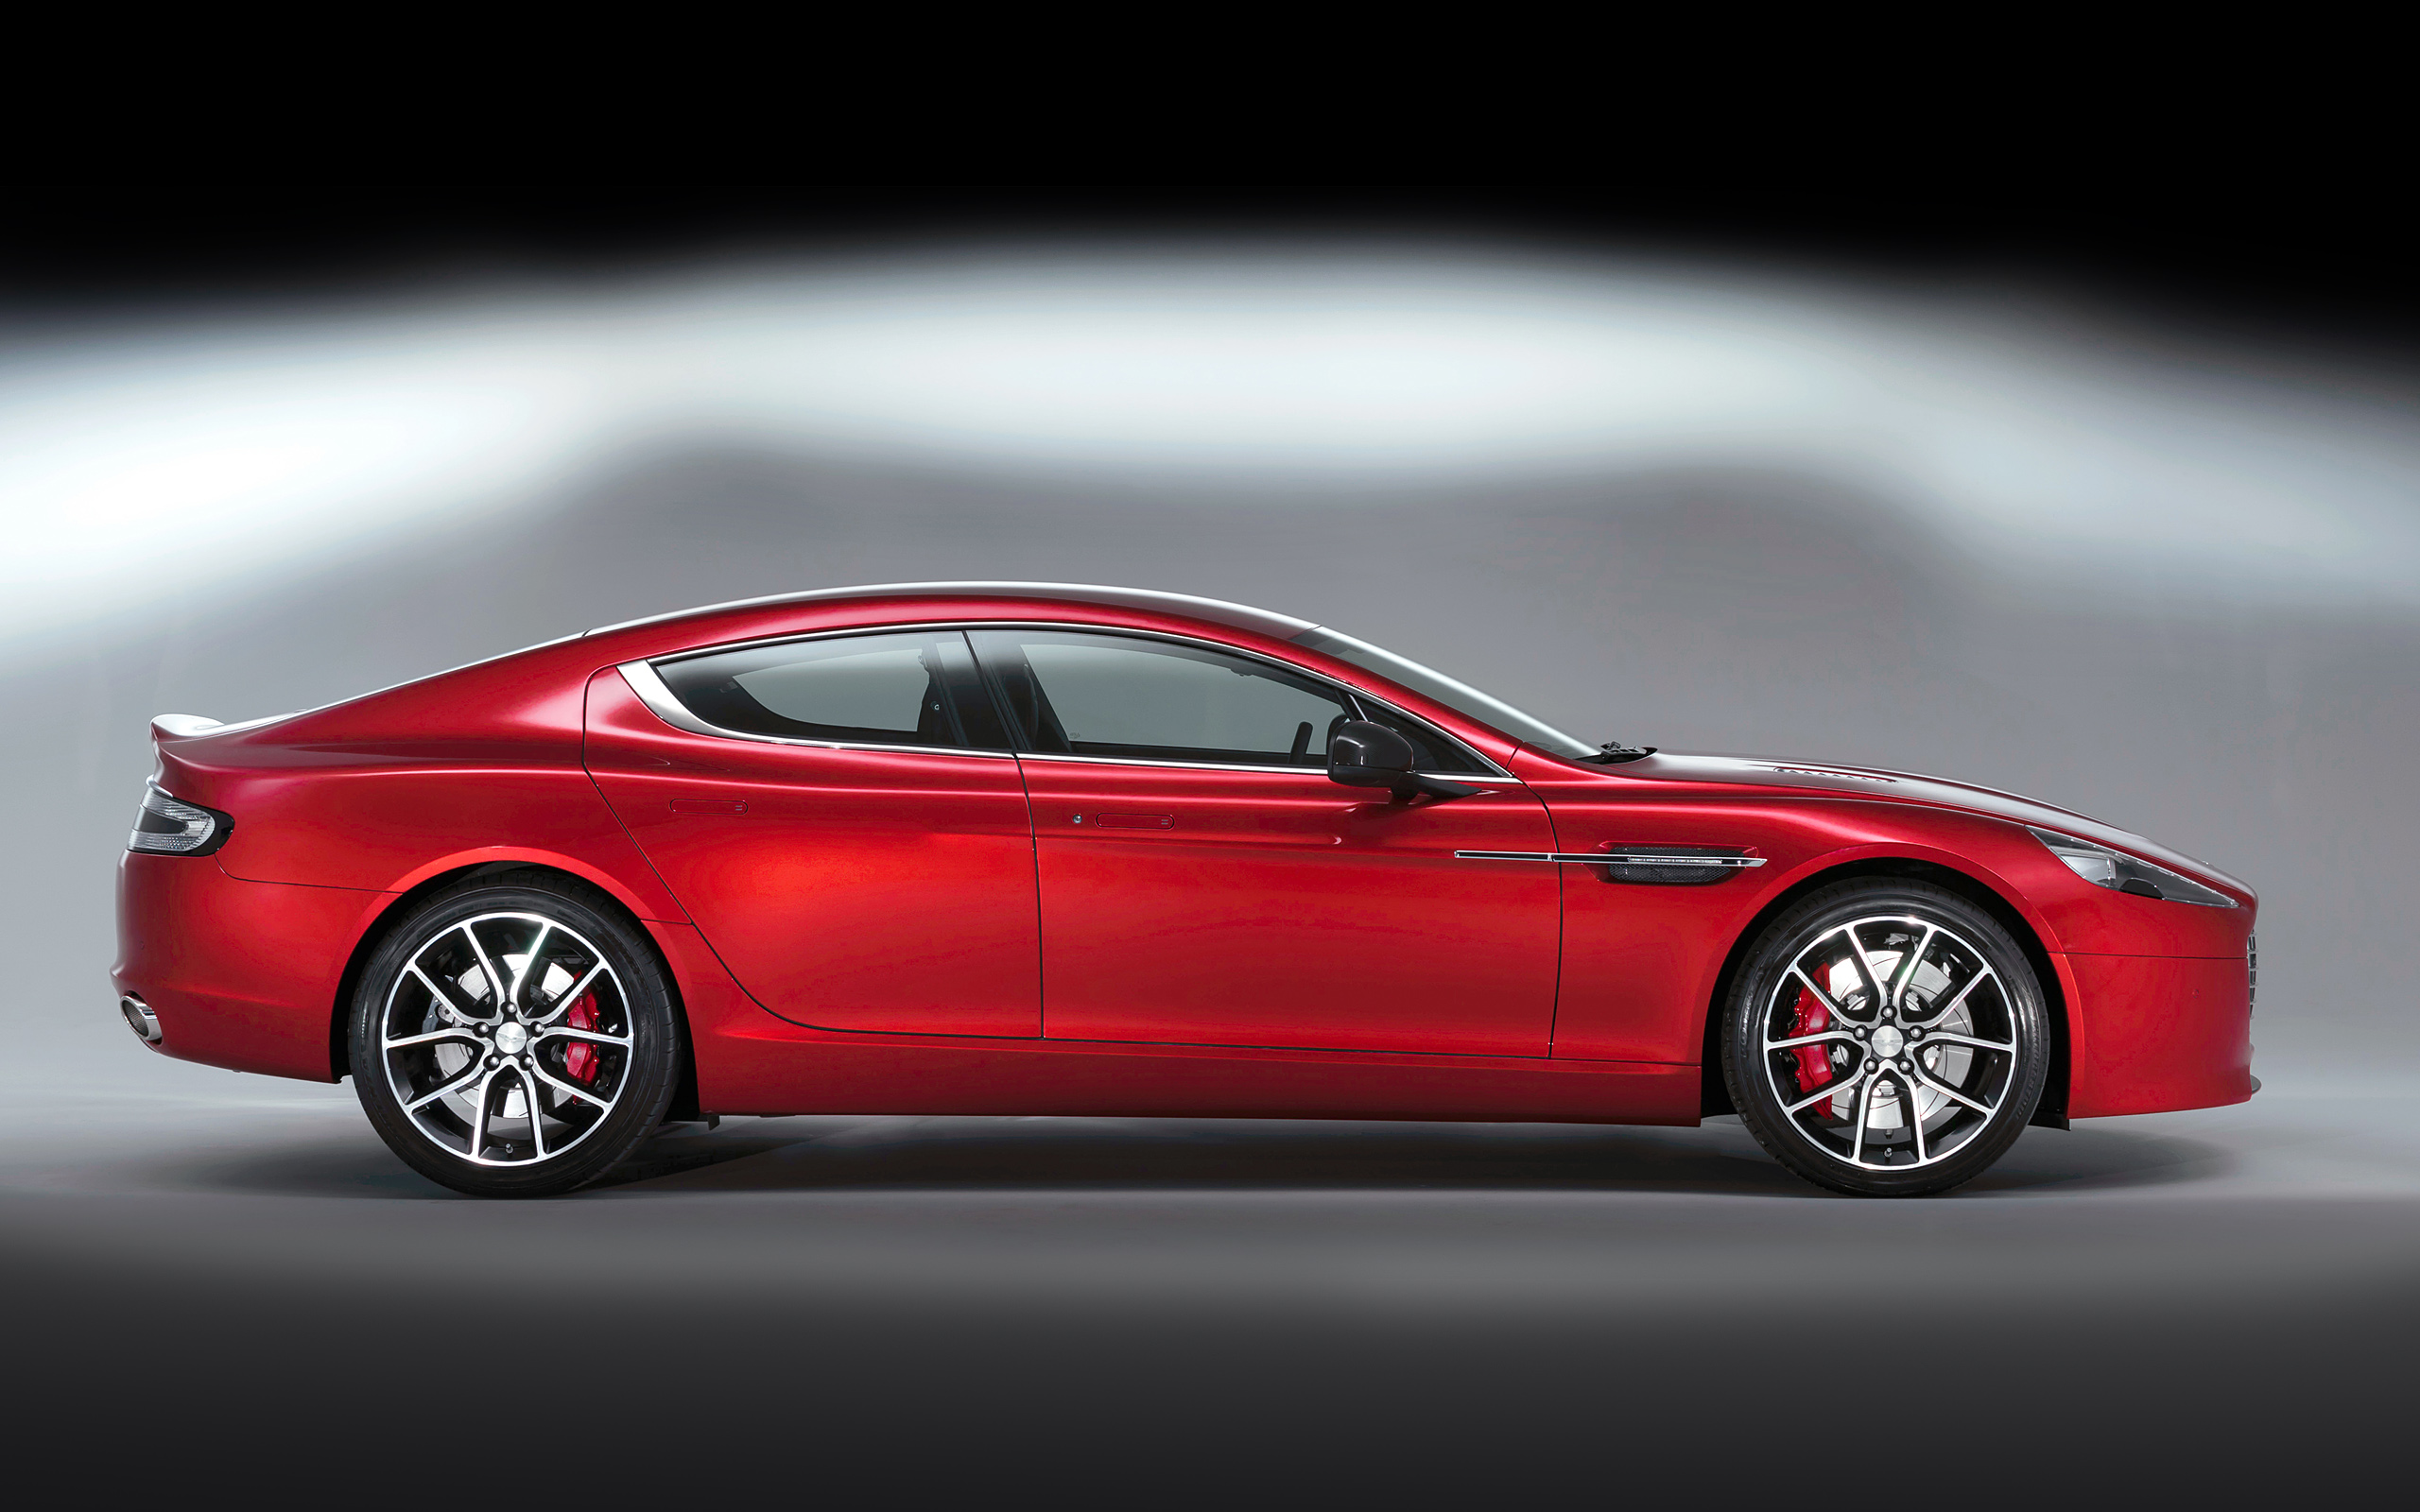 Aston Martin Rapide Wallpapers, Pictures, Images